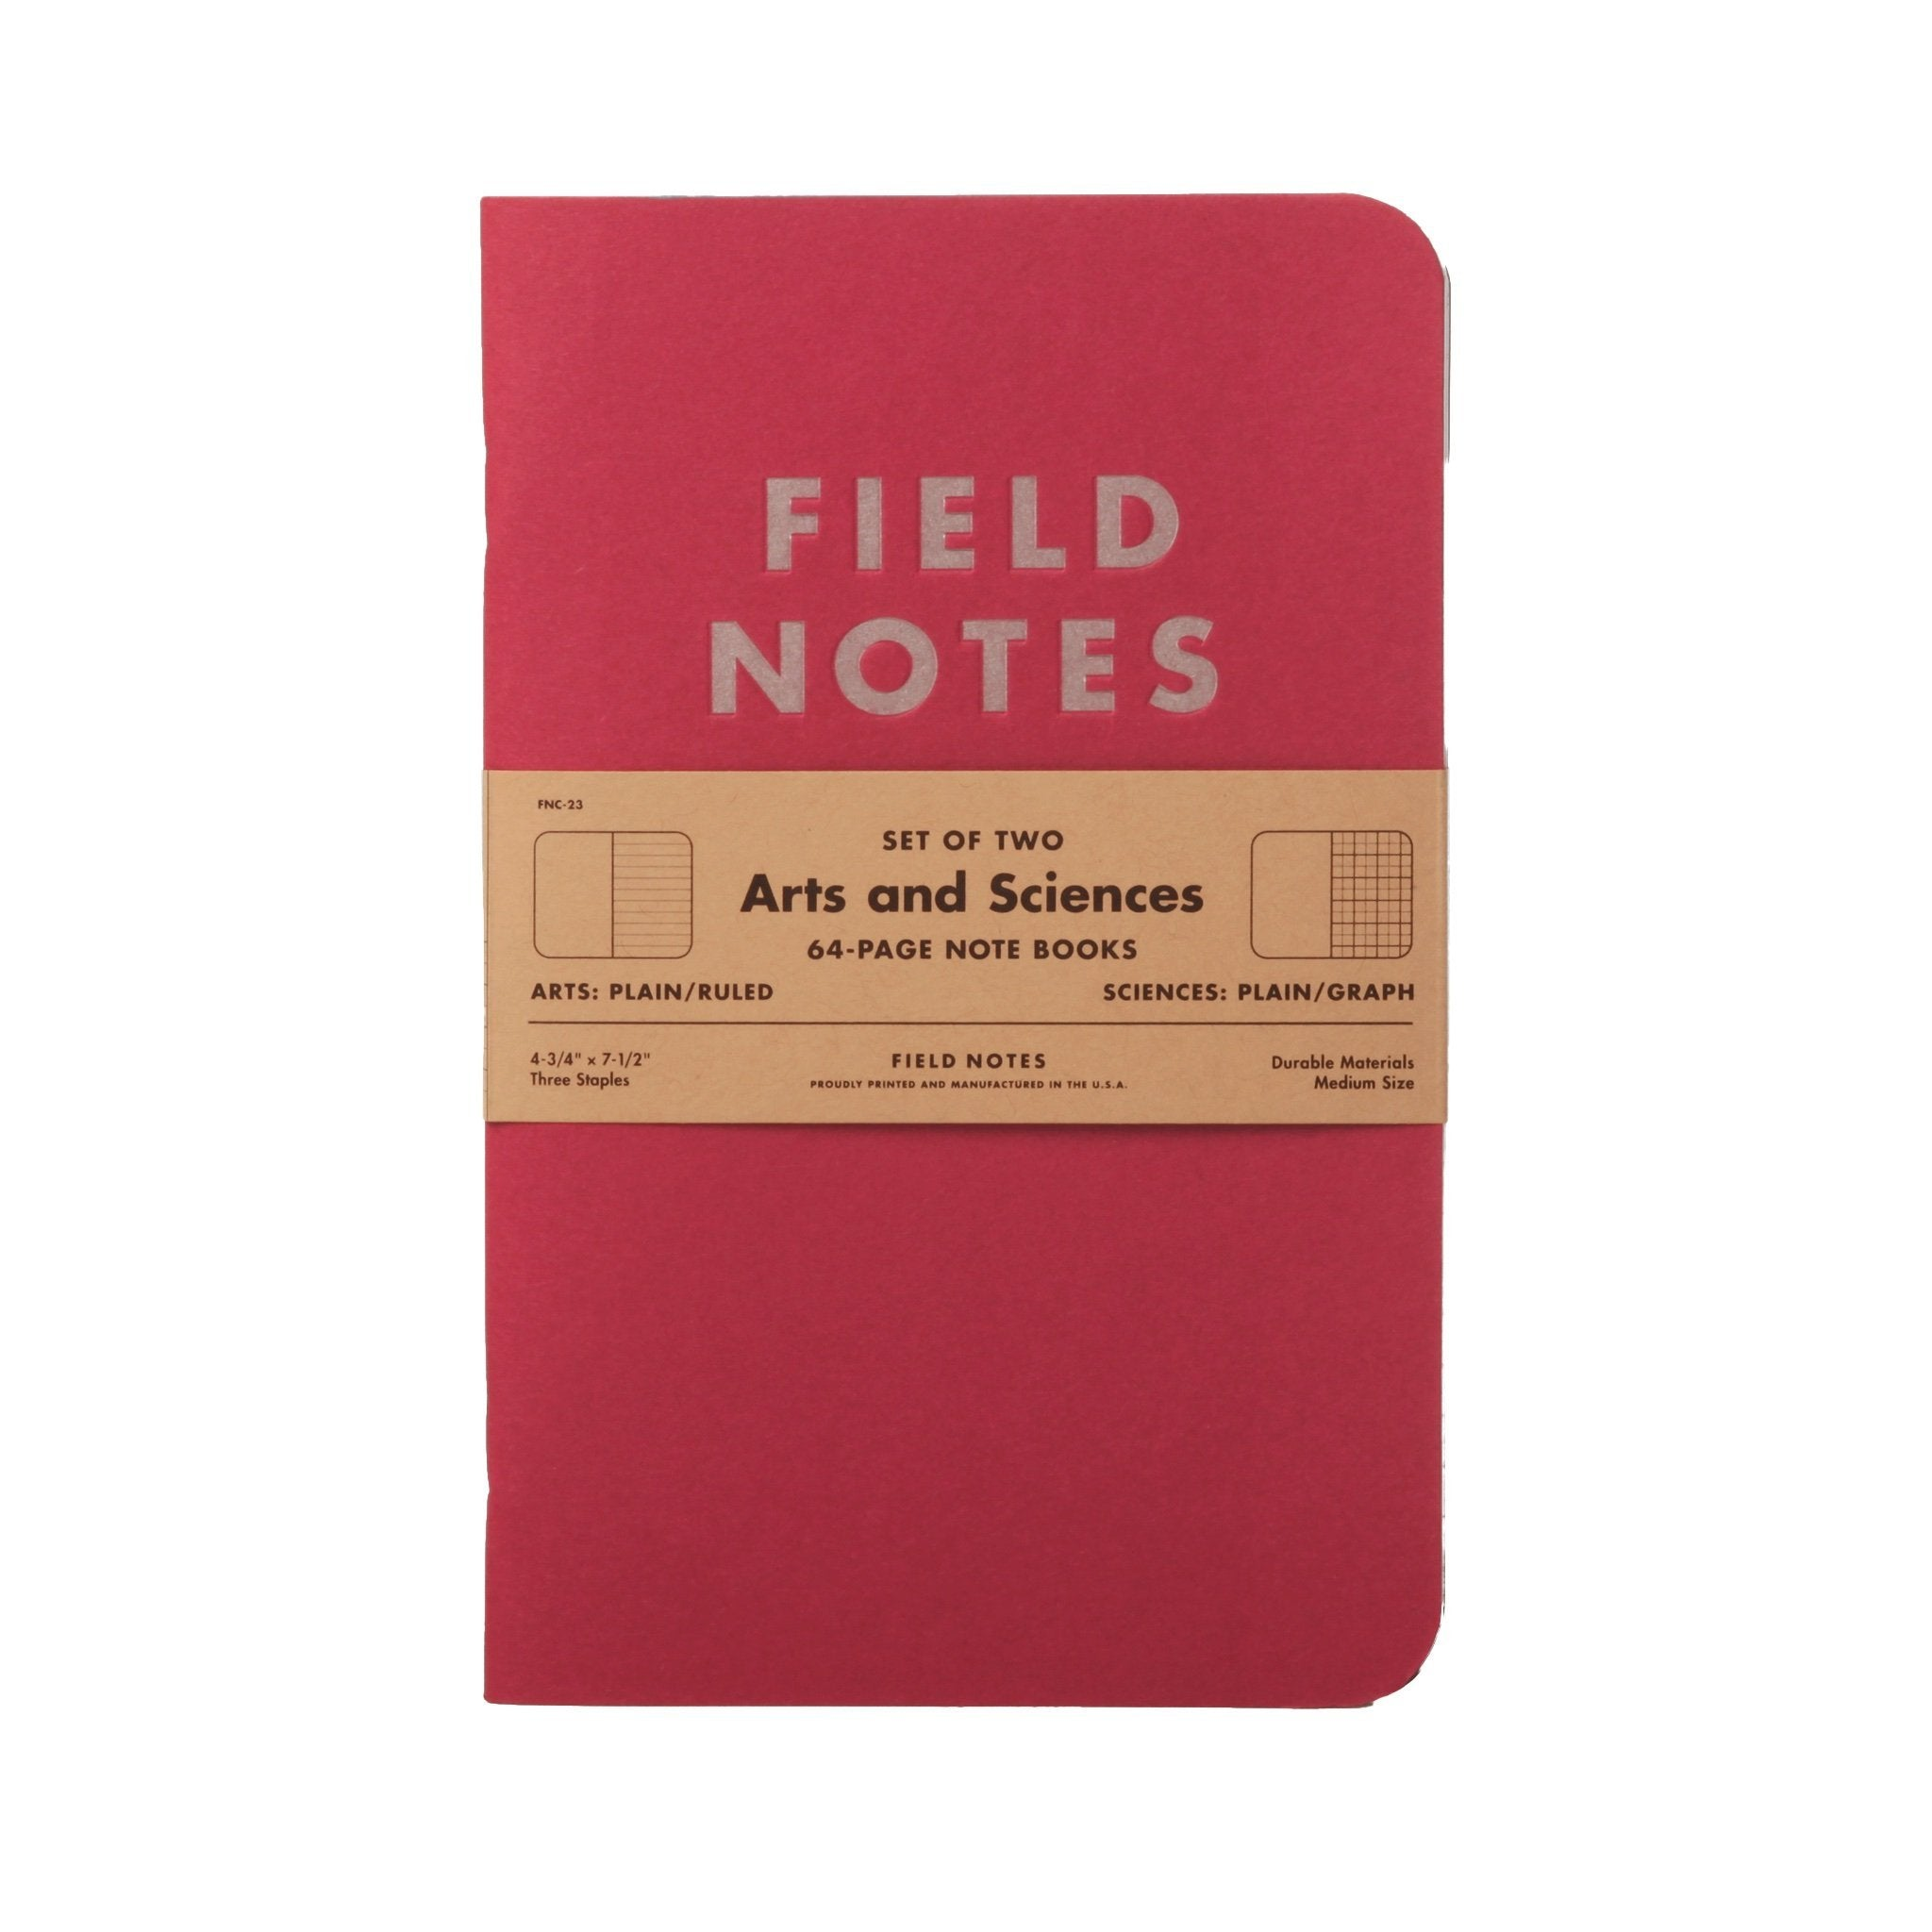 Field Notes Arts & Sciences - Notegeist dot com